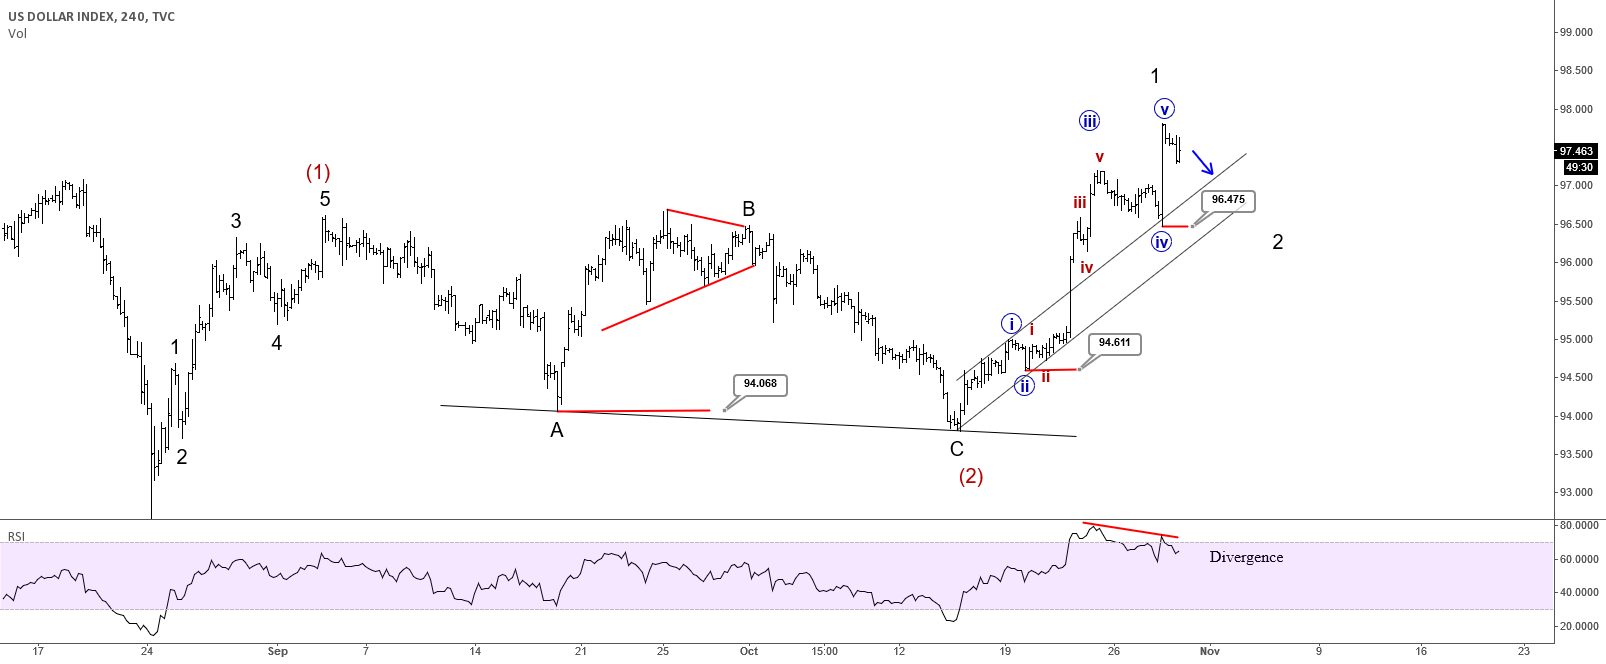 USD Index : Correction Could Follow In Days Ahead